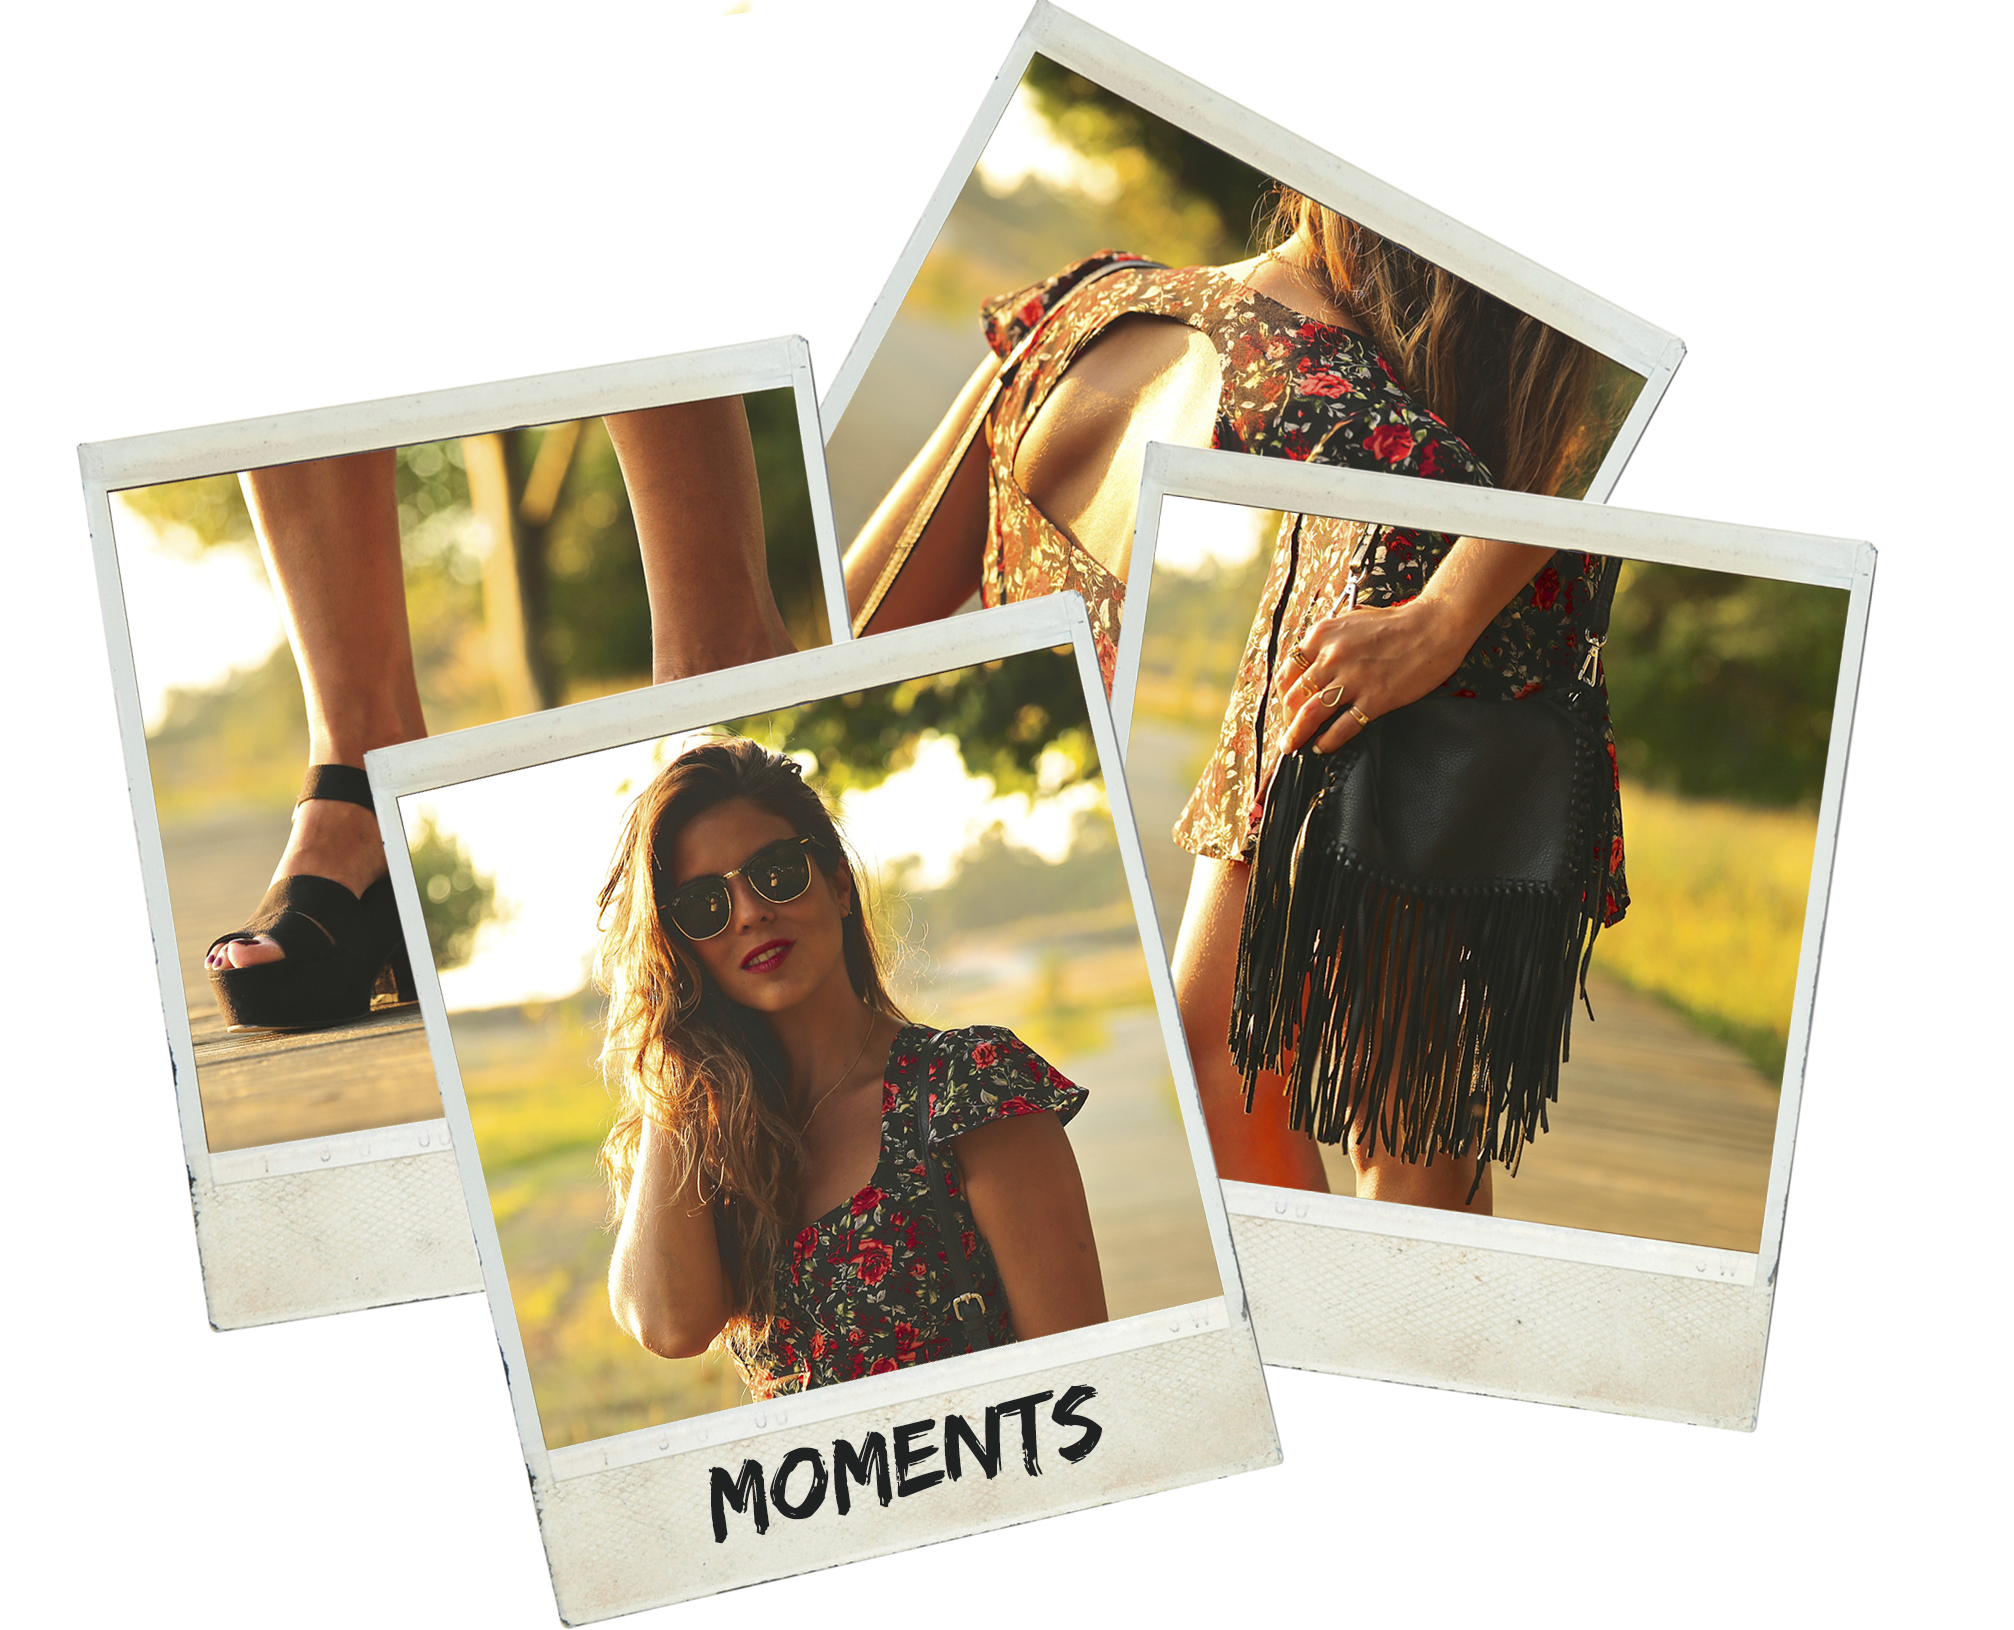 trendy_taste-look-outfit-street_style-ootd-blog-blogger-fashion_spain-moda_españa-flower_print-dress-vestido-flores-sandalias_negras-black_sandals-platforms-sunset-playa-beach-summer-polaroid